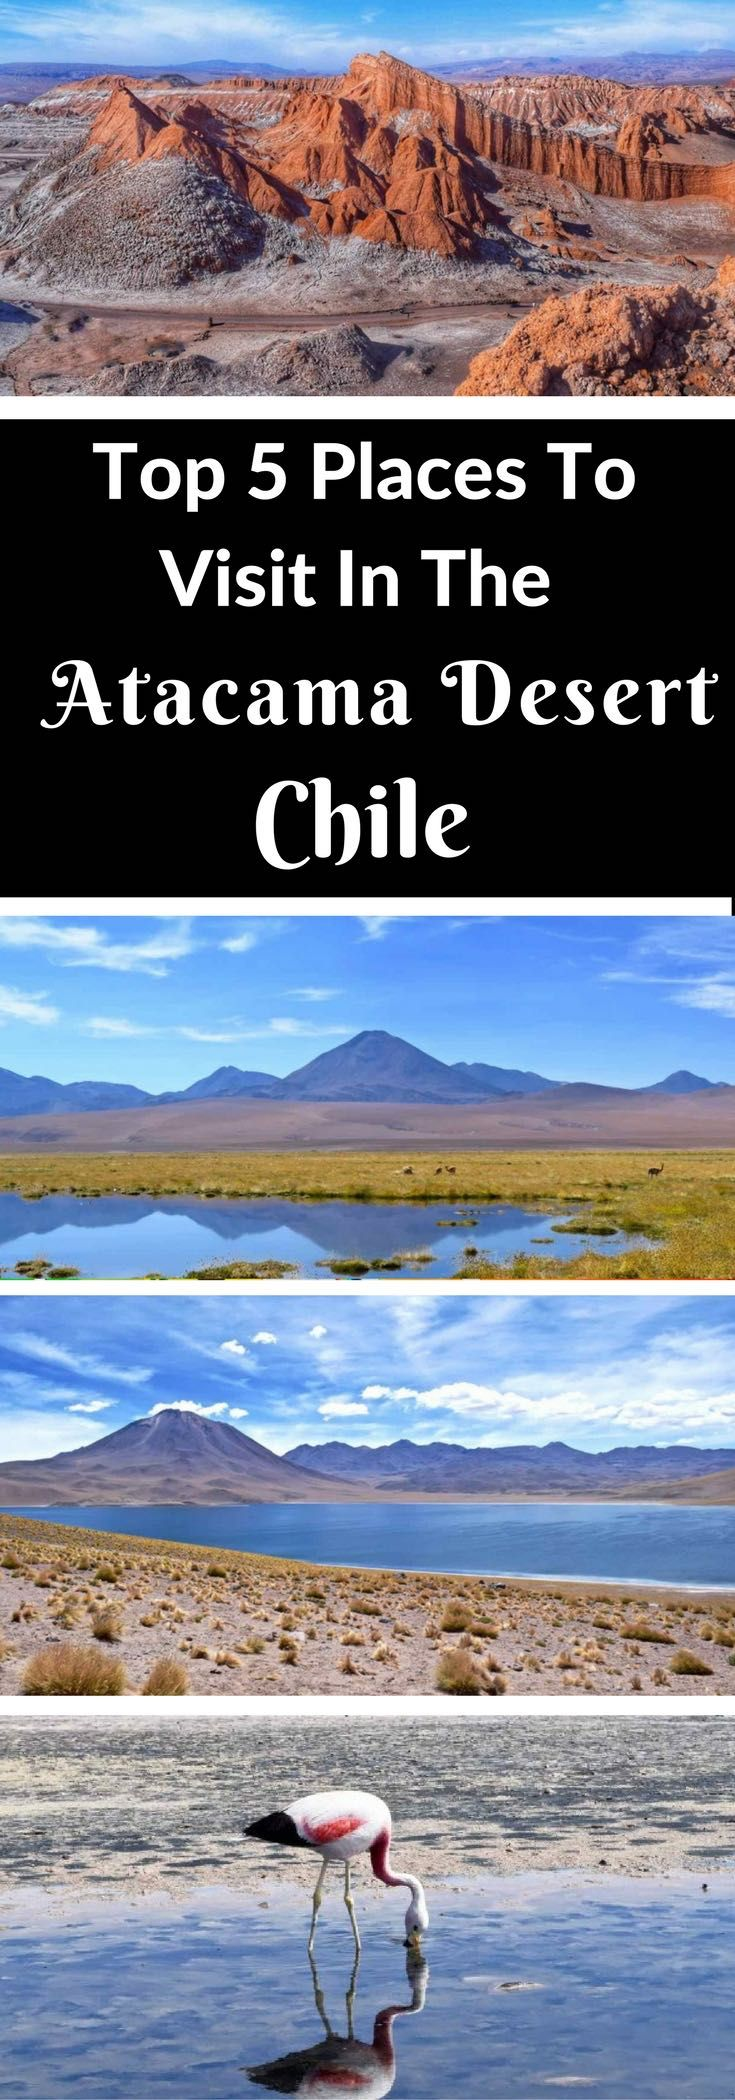 Top 5 Places To Visit In The Atacama Desert, Chile